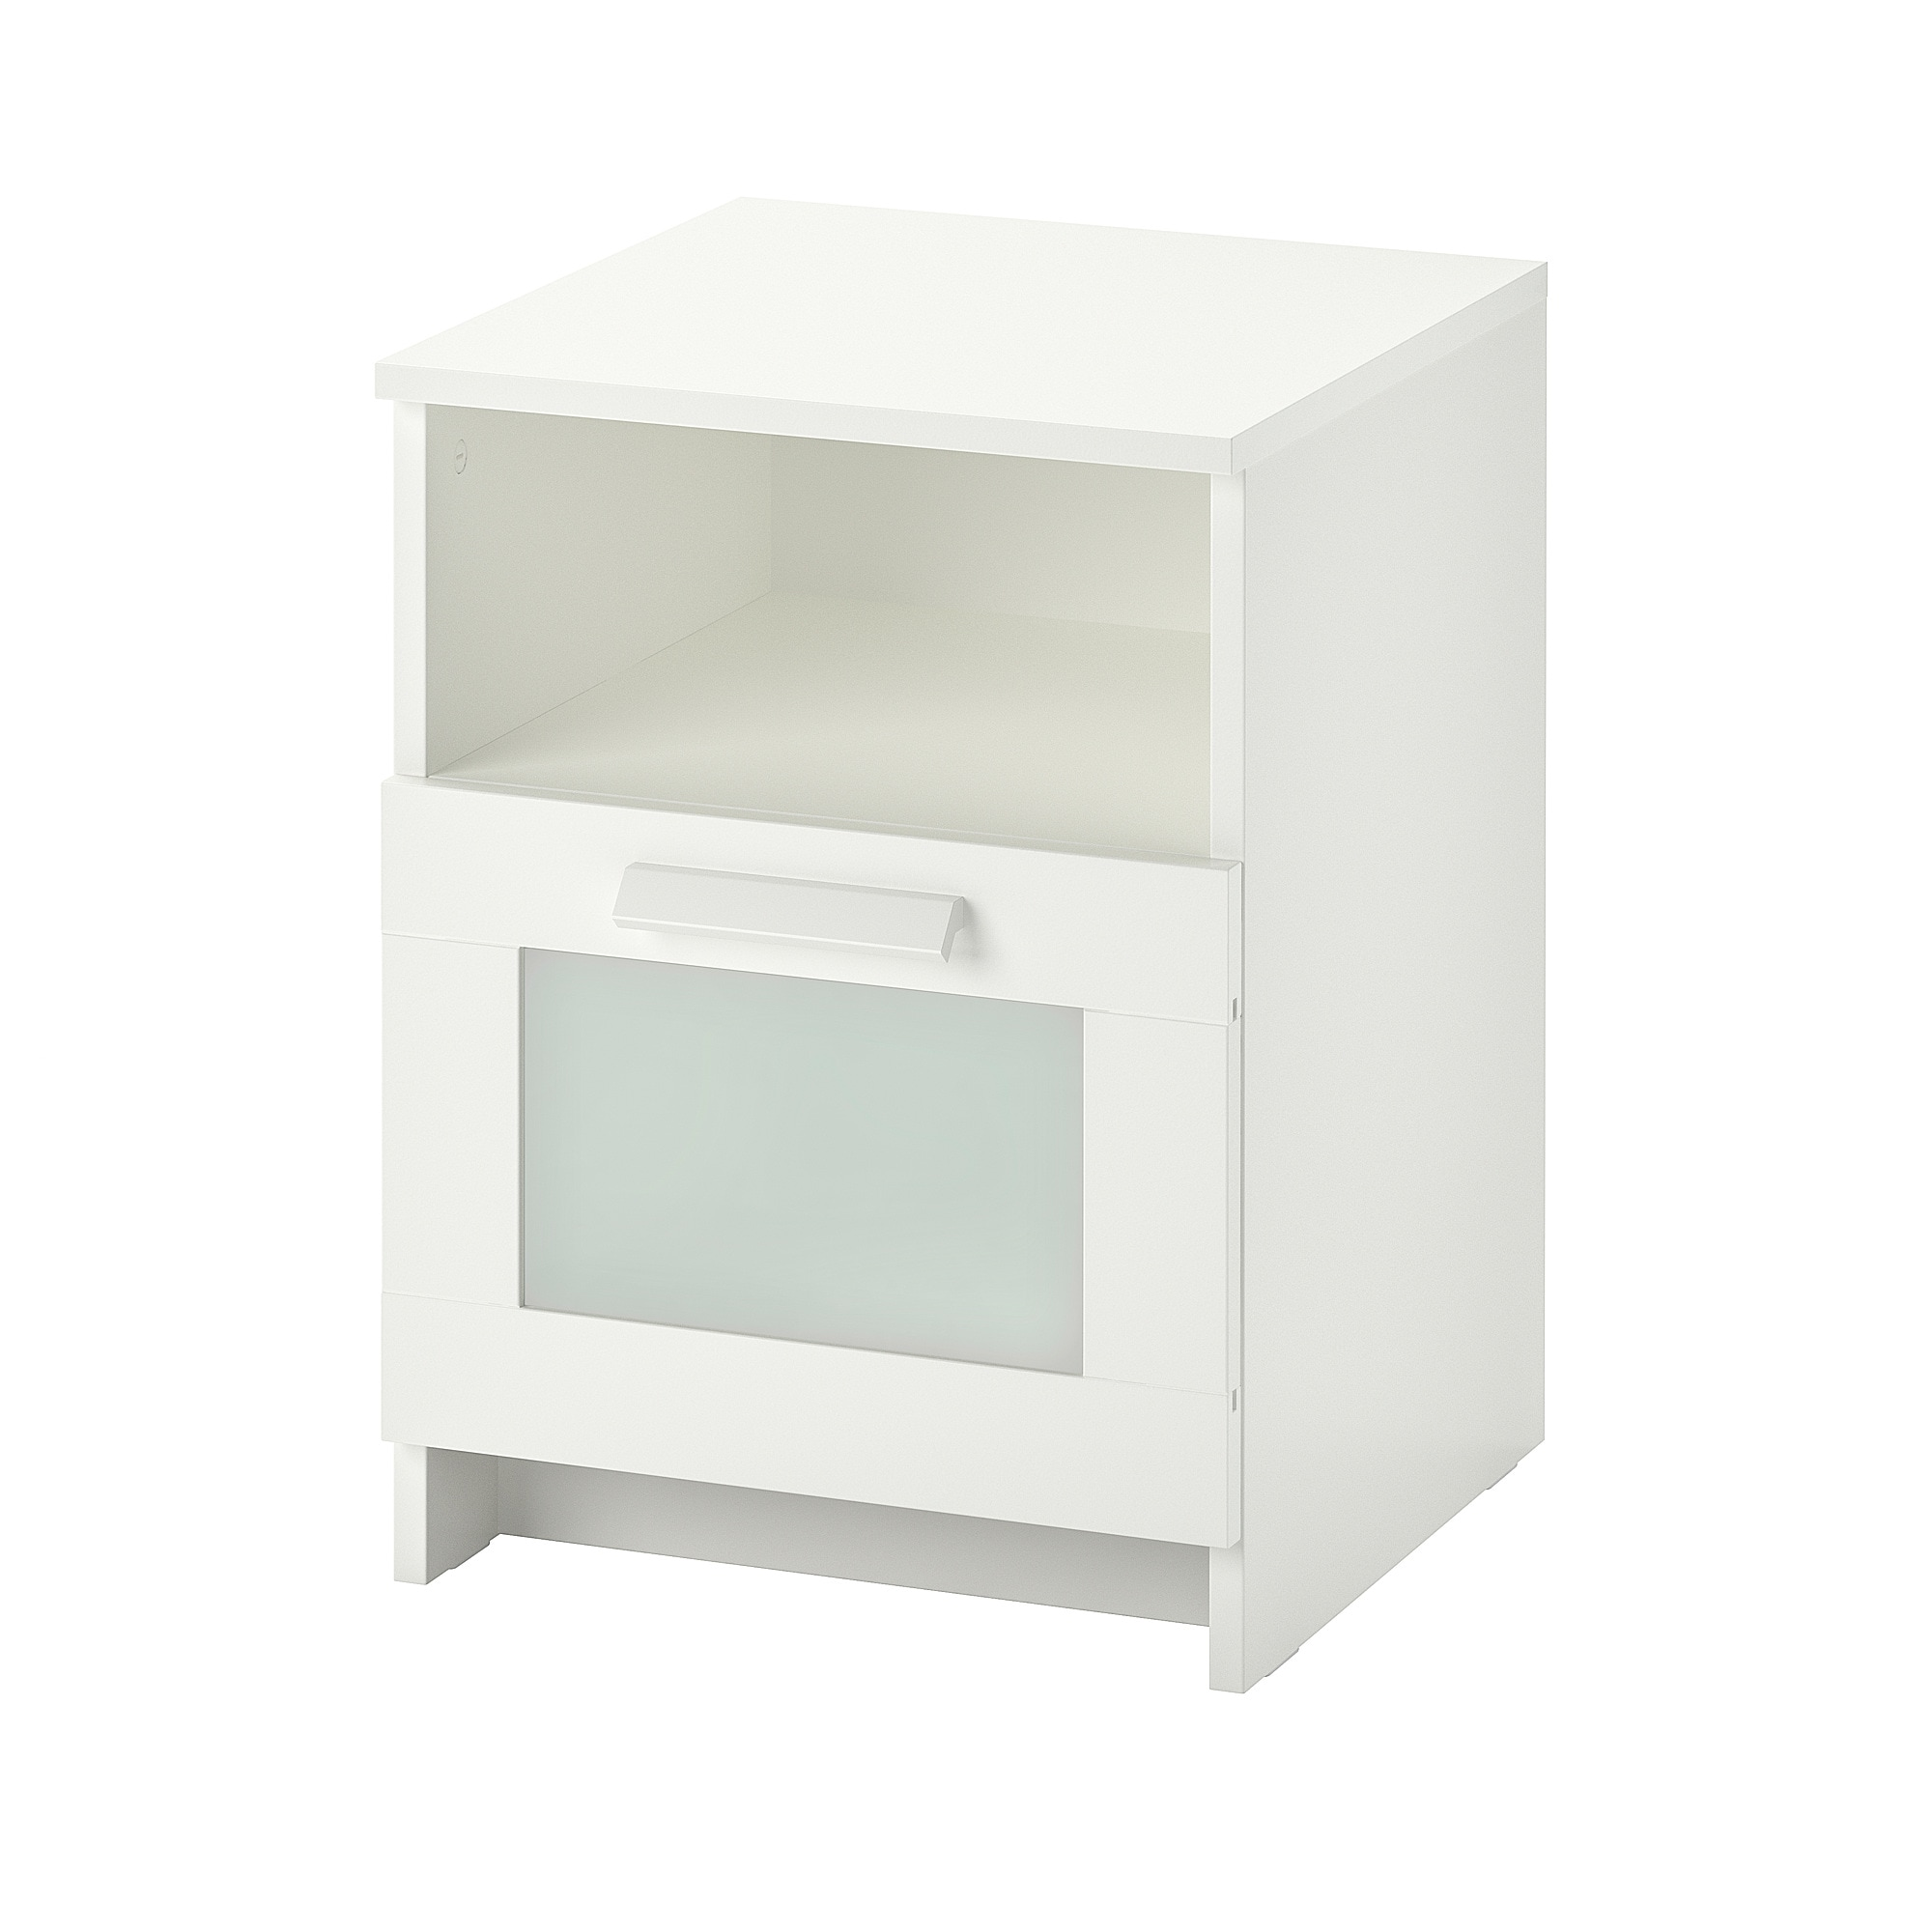 Malm Ablagetisch Brimnes Nightstand White Ikea Please Ship These To Me